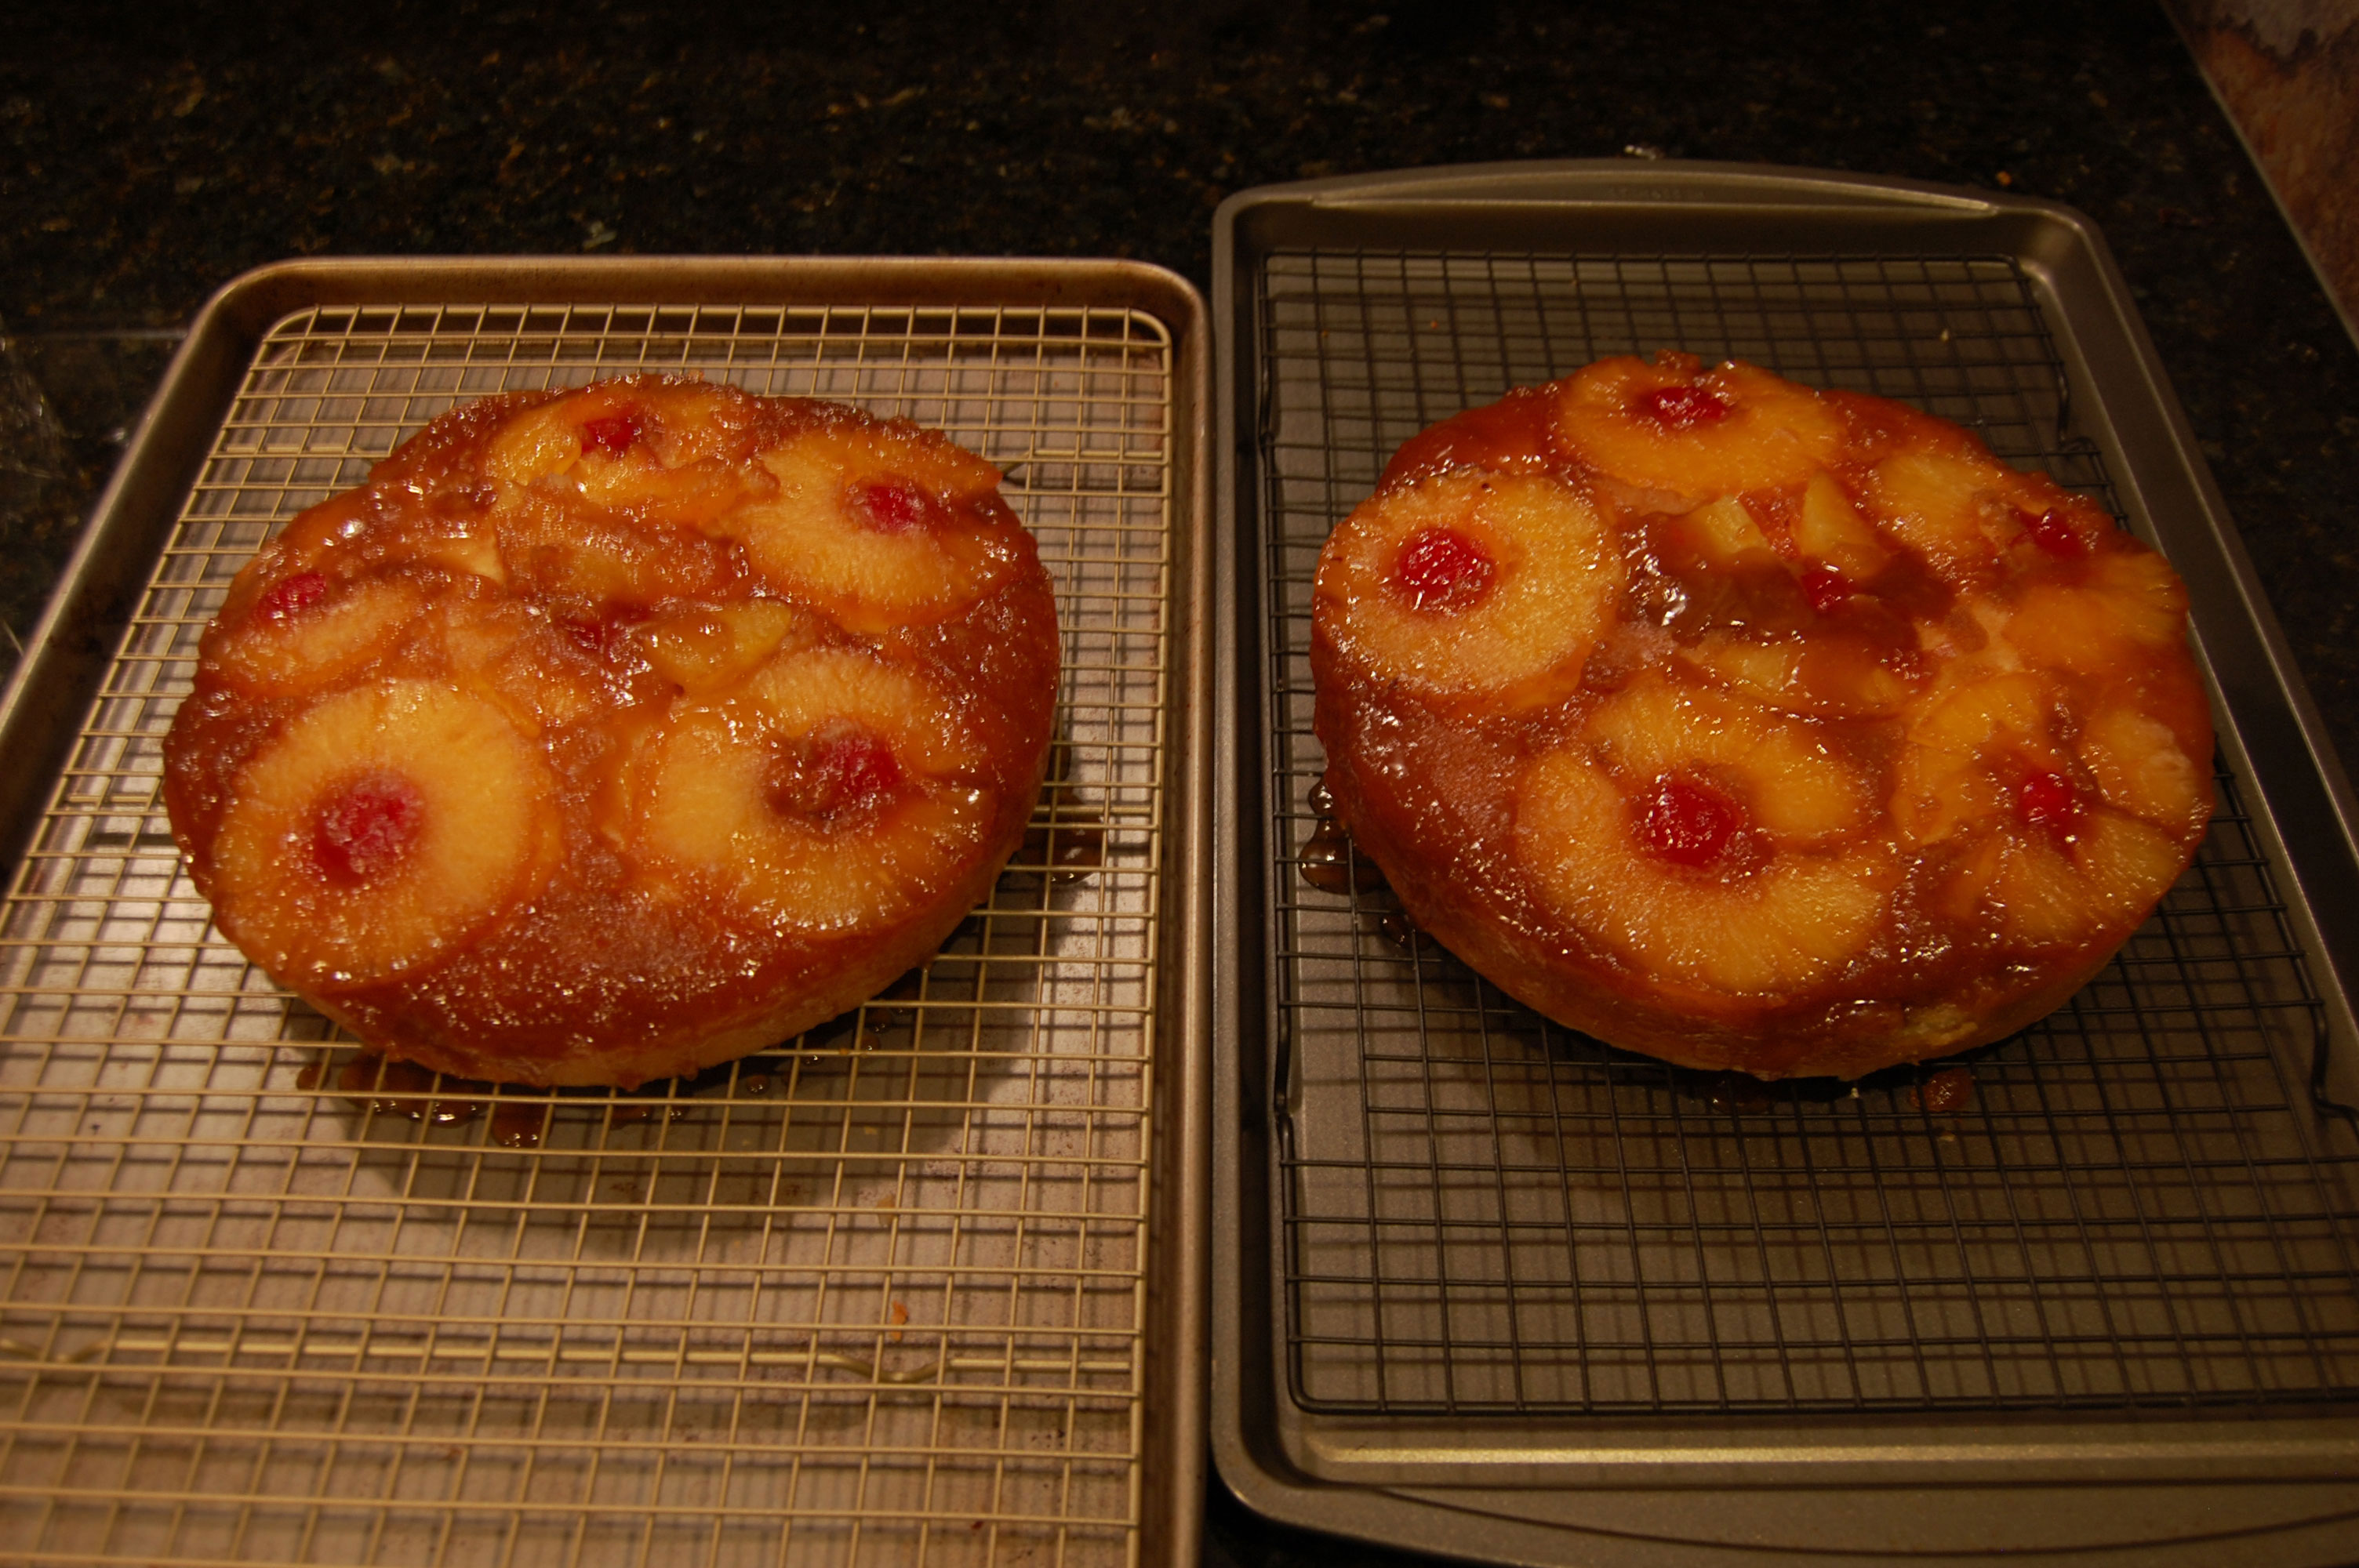 The Two Pineapple Upside Down Cakes